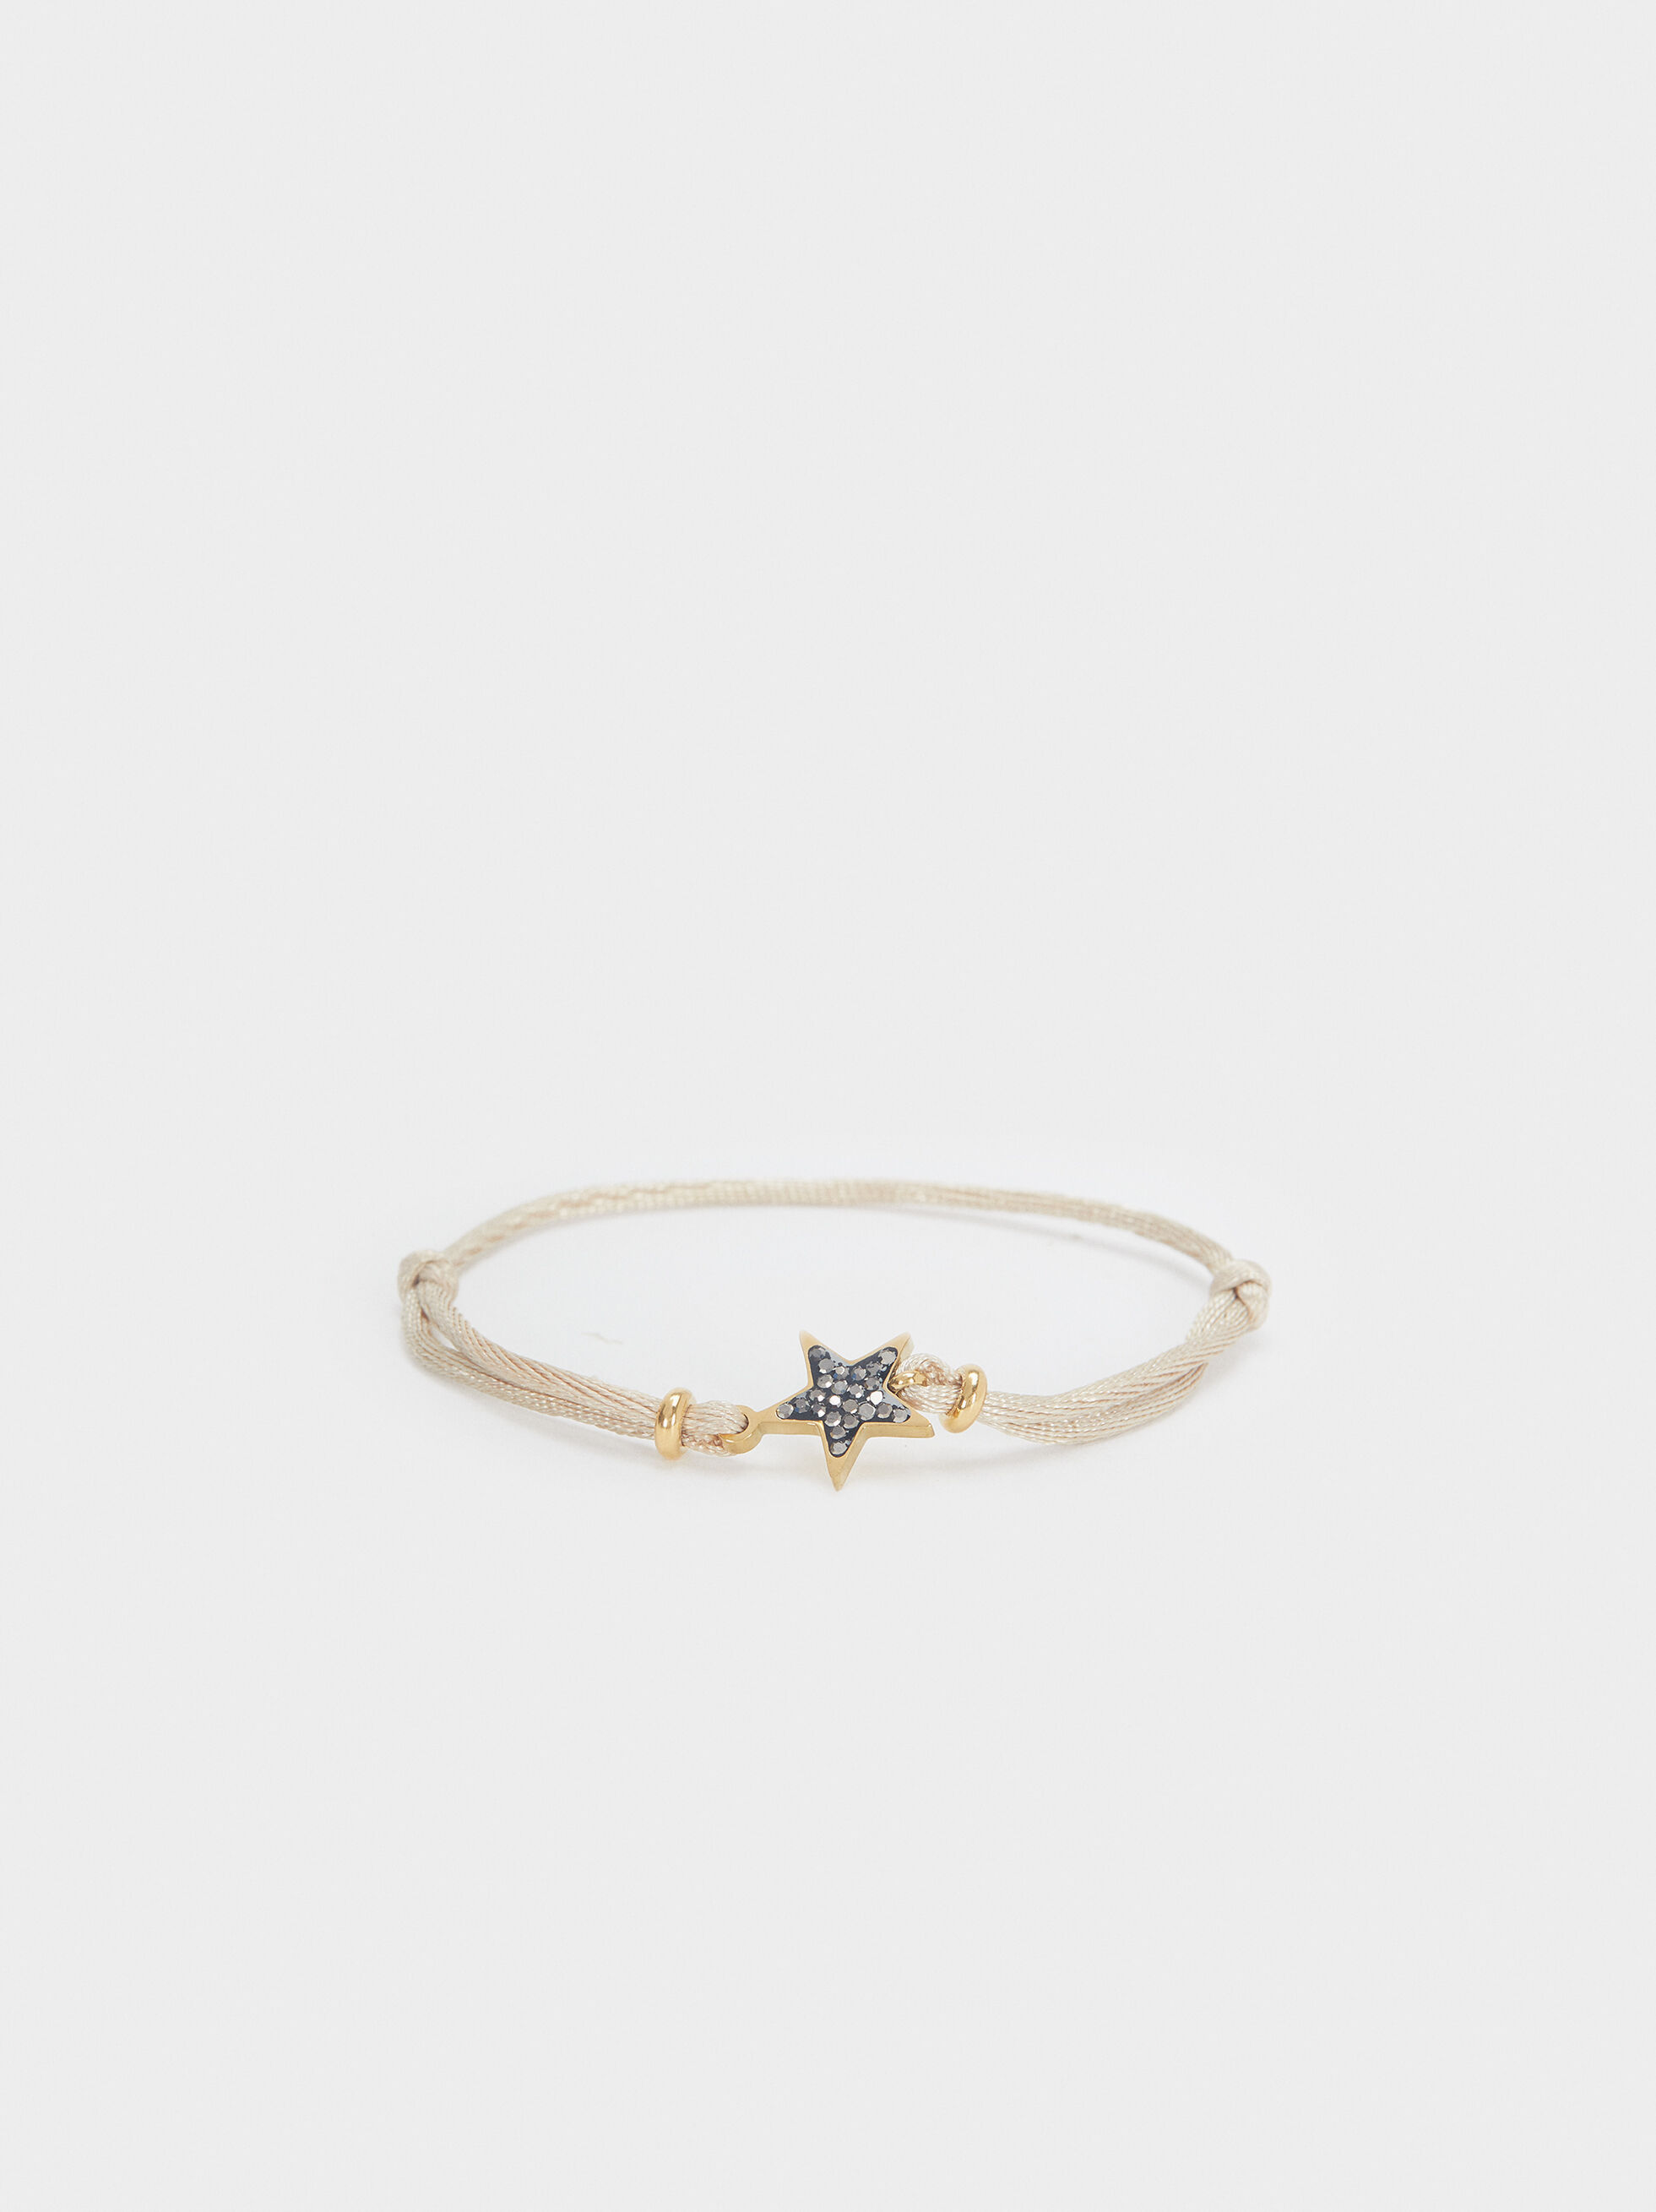 Adjustable Chain Bracelet With Star Detail, Beige, hi-res